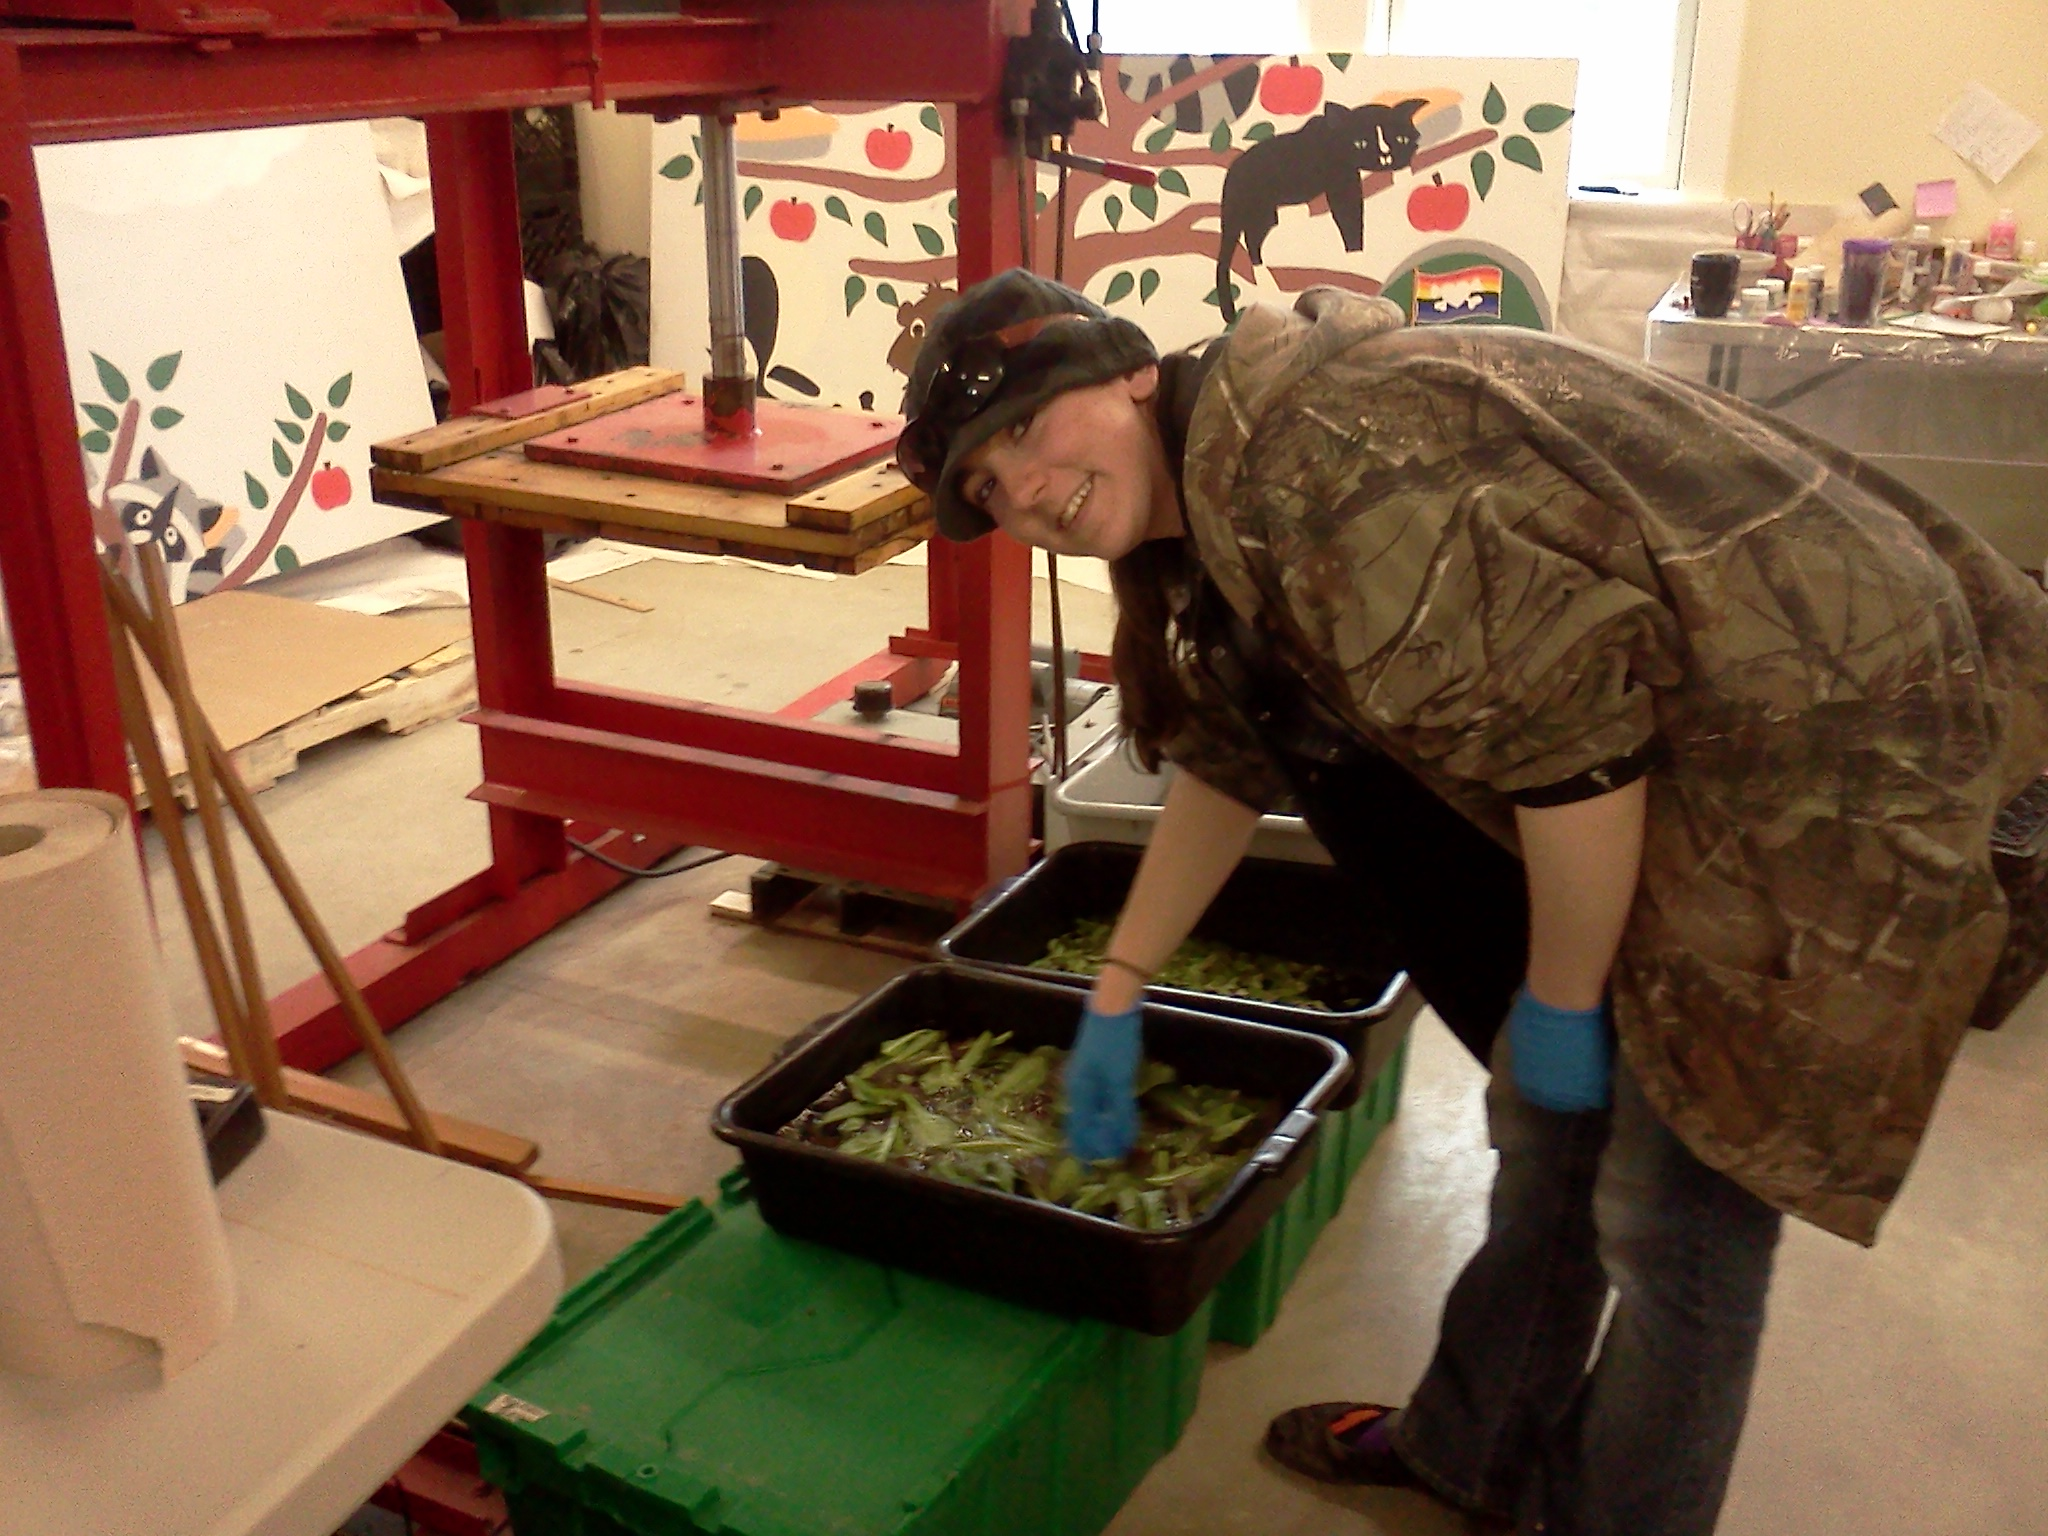 Here we see Christal, our packing house manager, cleaning the greens and preparing them for bagging.